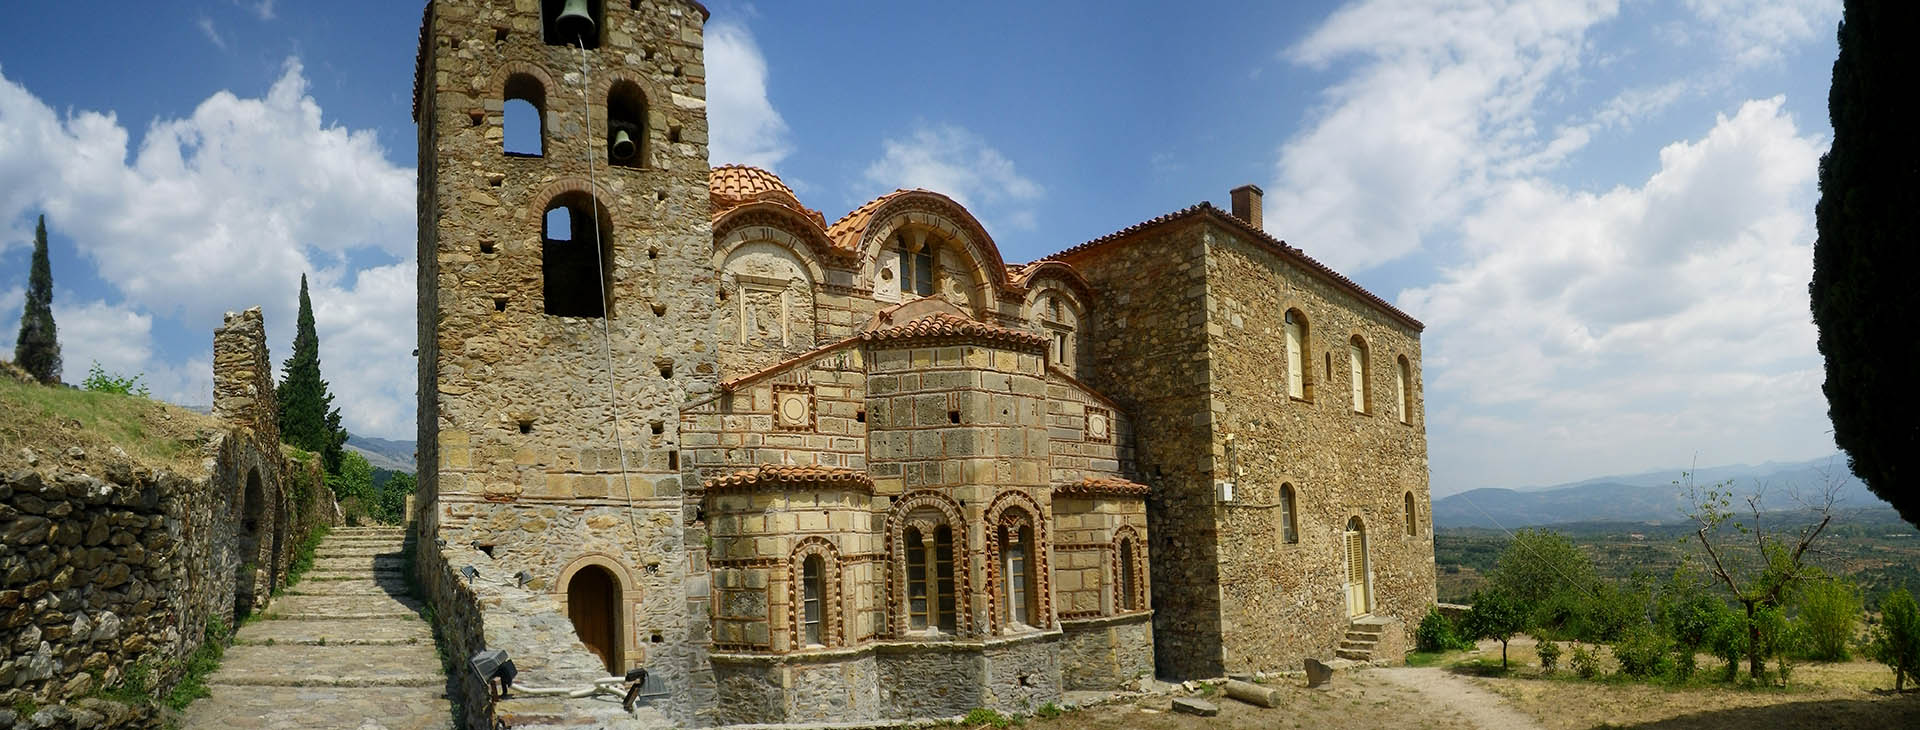 Mystras, Church of St. Dimitrios (Metropolis), Lakonia